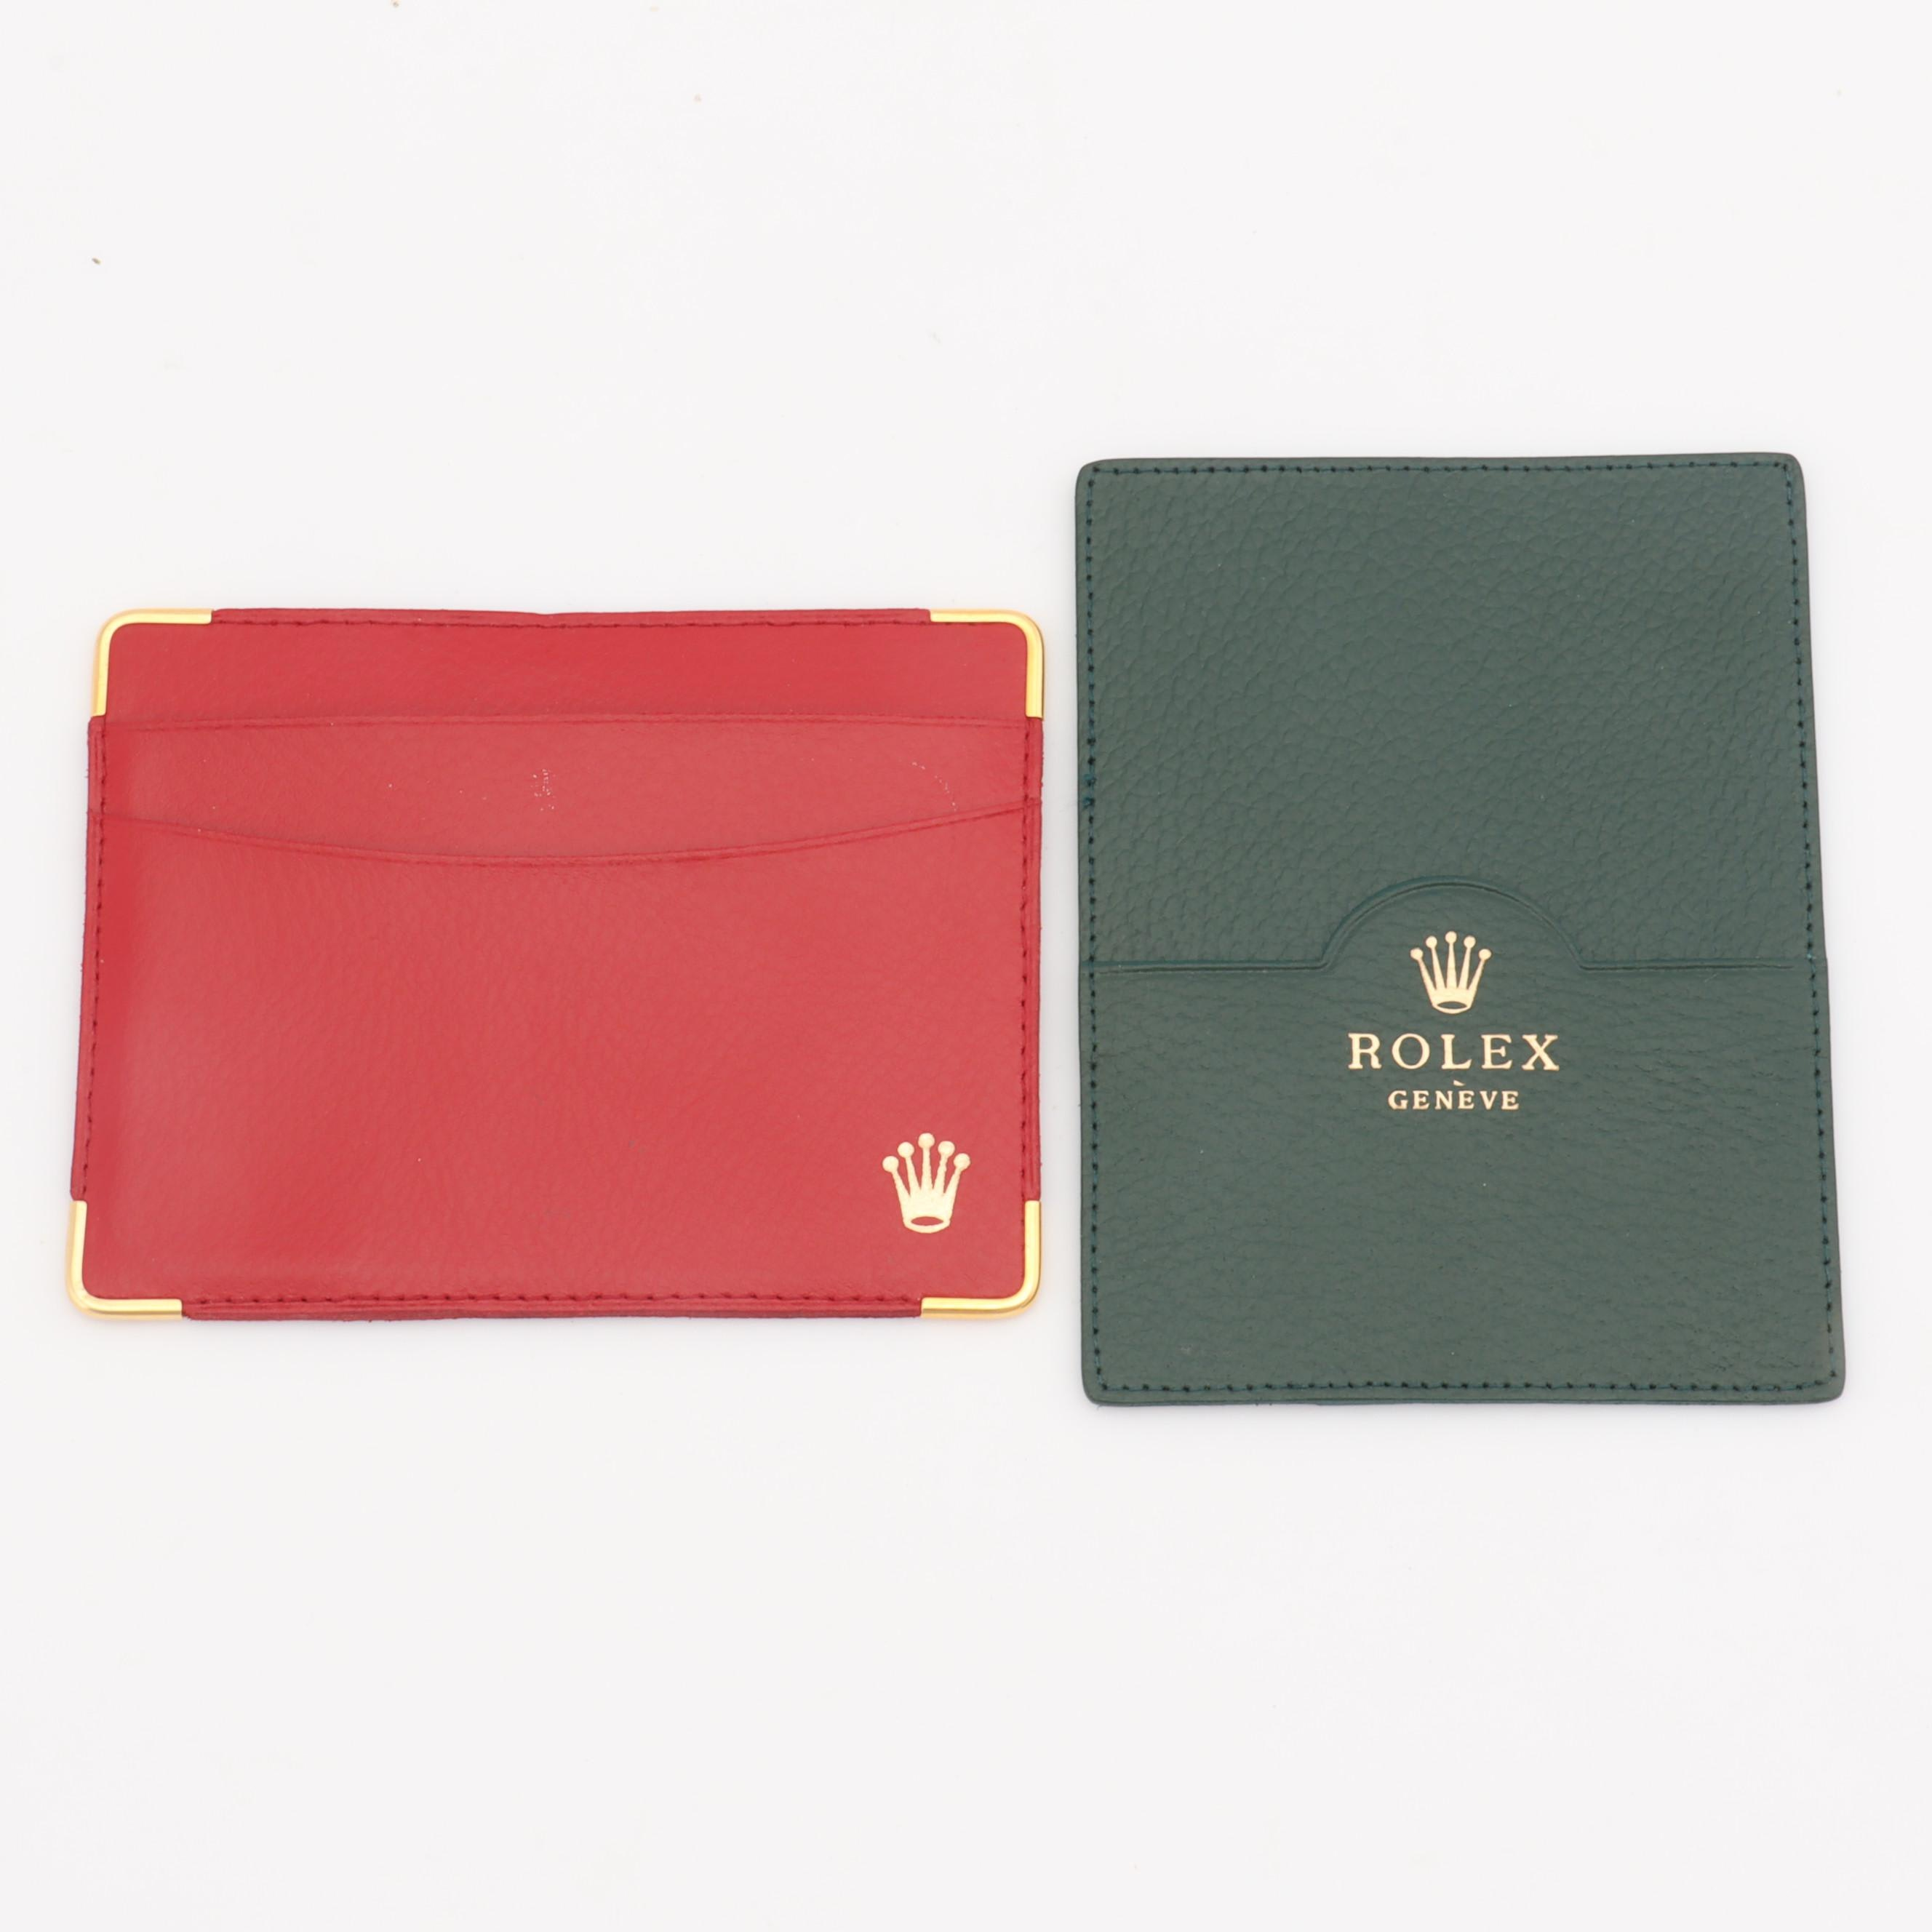 Rolex Accessories Red and Green Grained Leather Card Cases with Gold Tone Trim